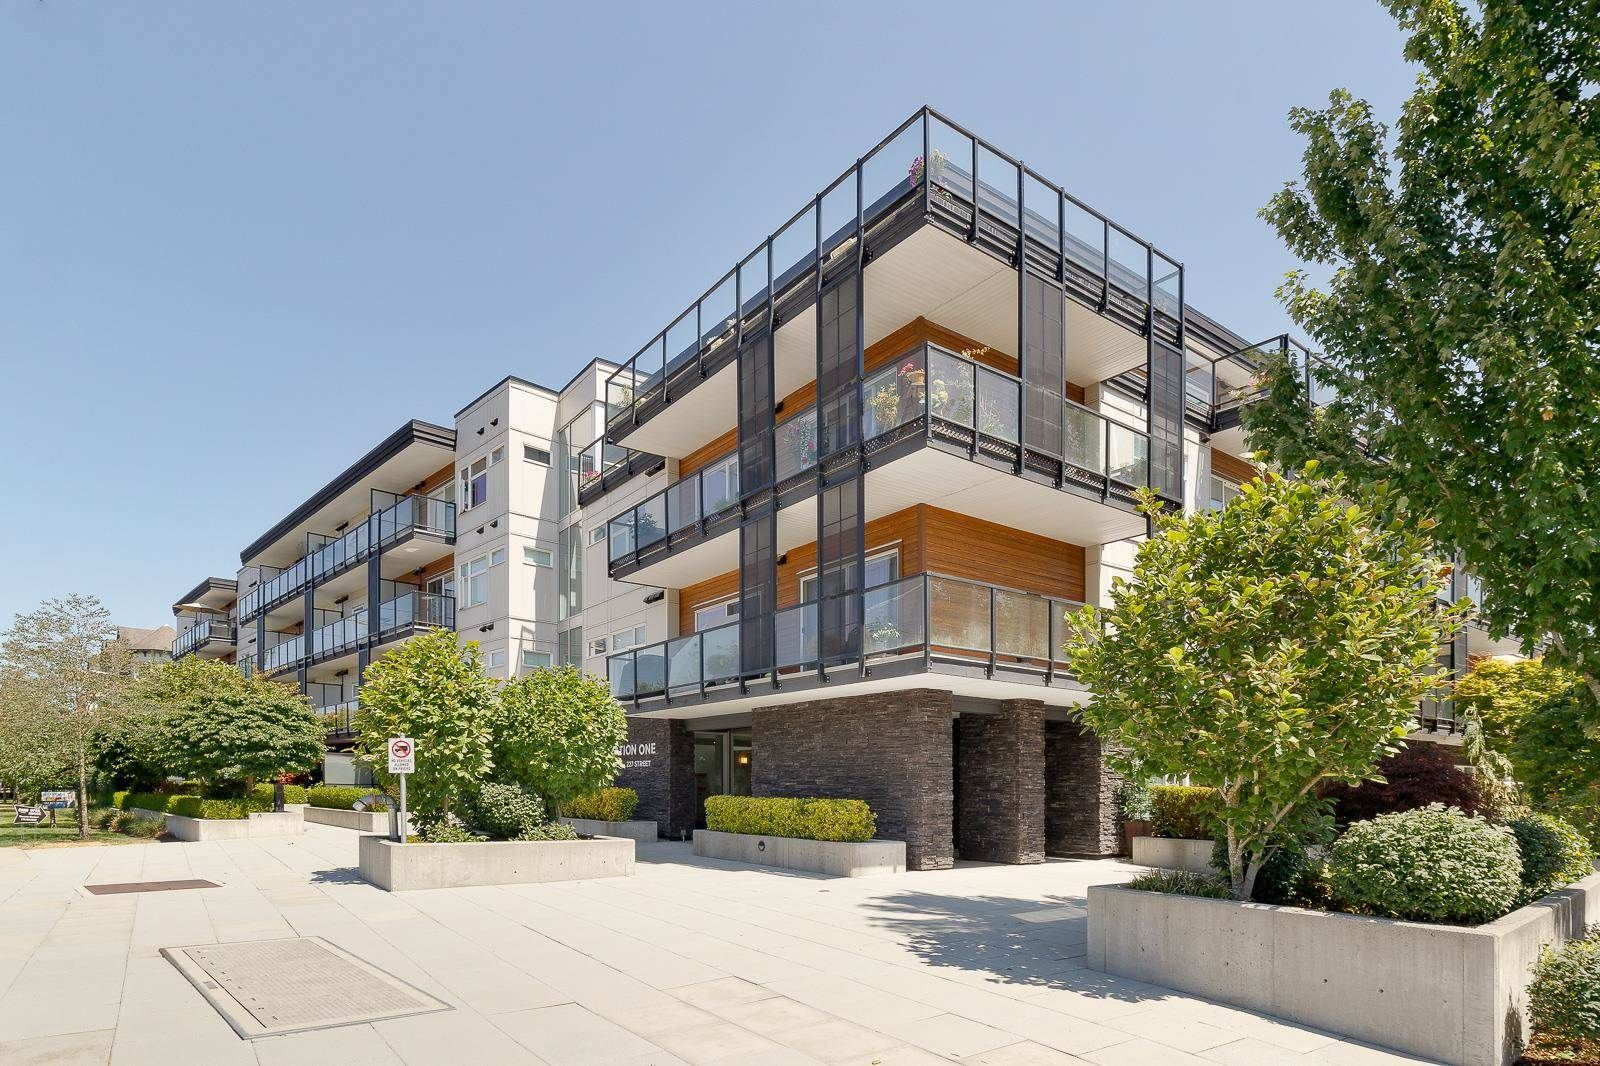 """Main Photo: 205 12070 227 Street in Maple Ridge: East Central Condo for sale in """"STATION ONE"""" : MLS®# R2602000"""